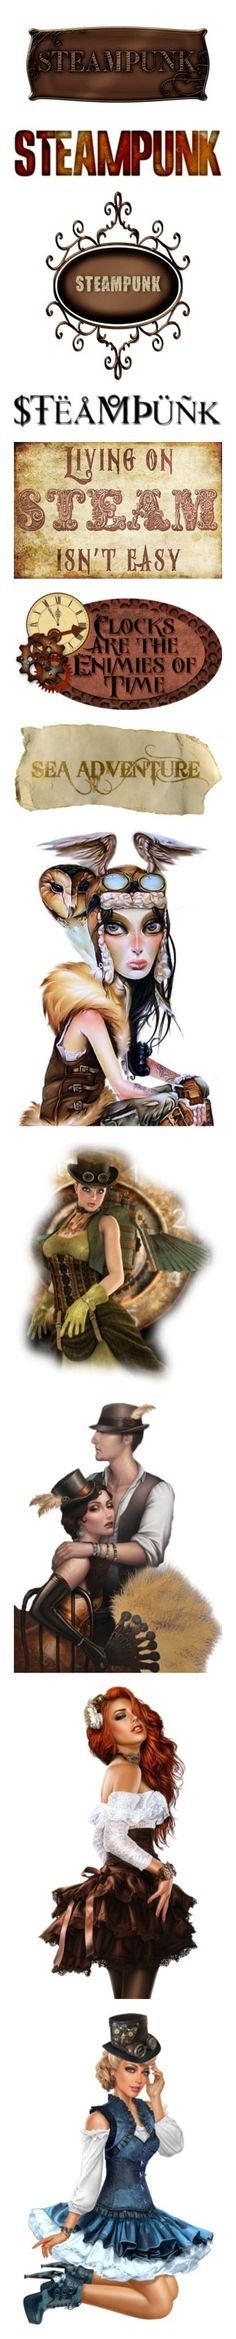 """Steampunk"" by craftygeminicreation on Polyvore featuring steampunk, words, backgrounds, text, filler, quotes, phrase, saying, headline and steam punk"